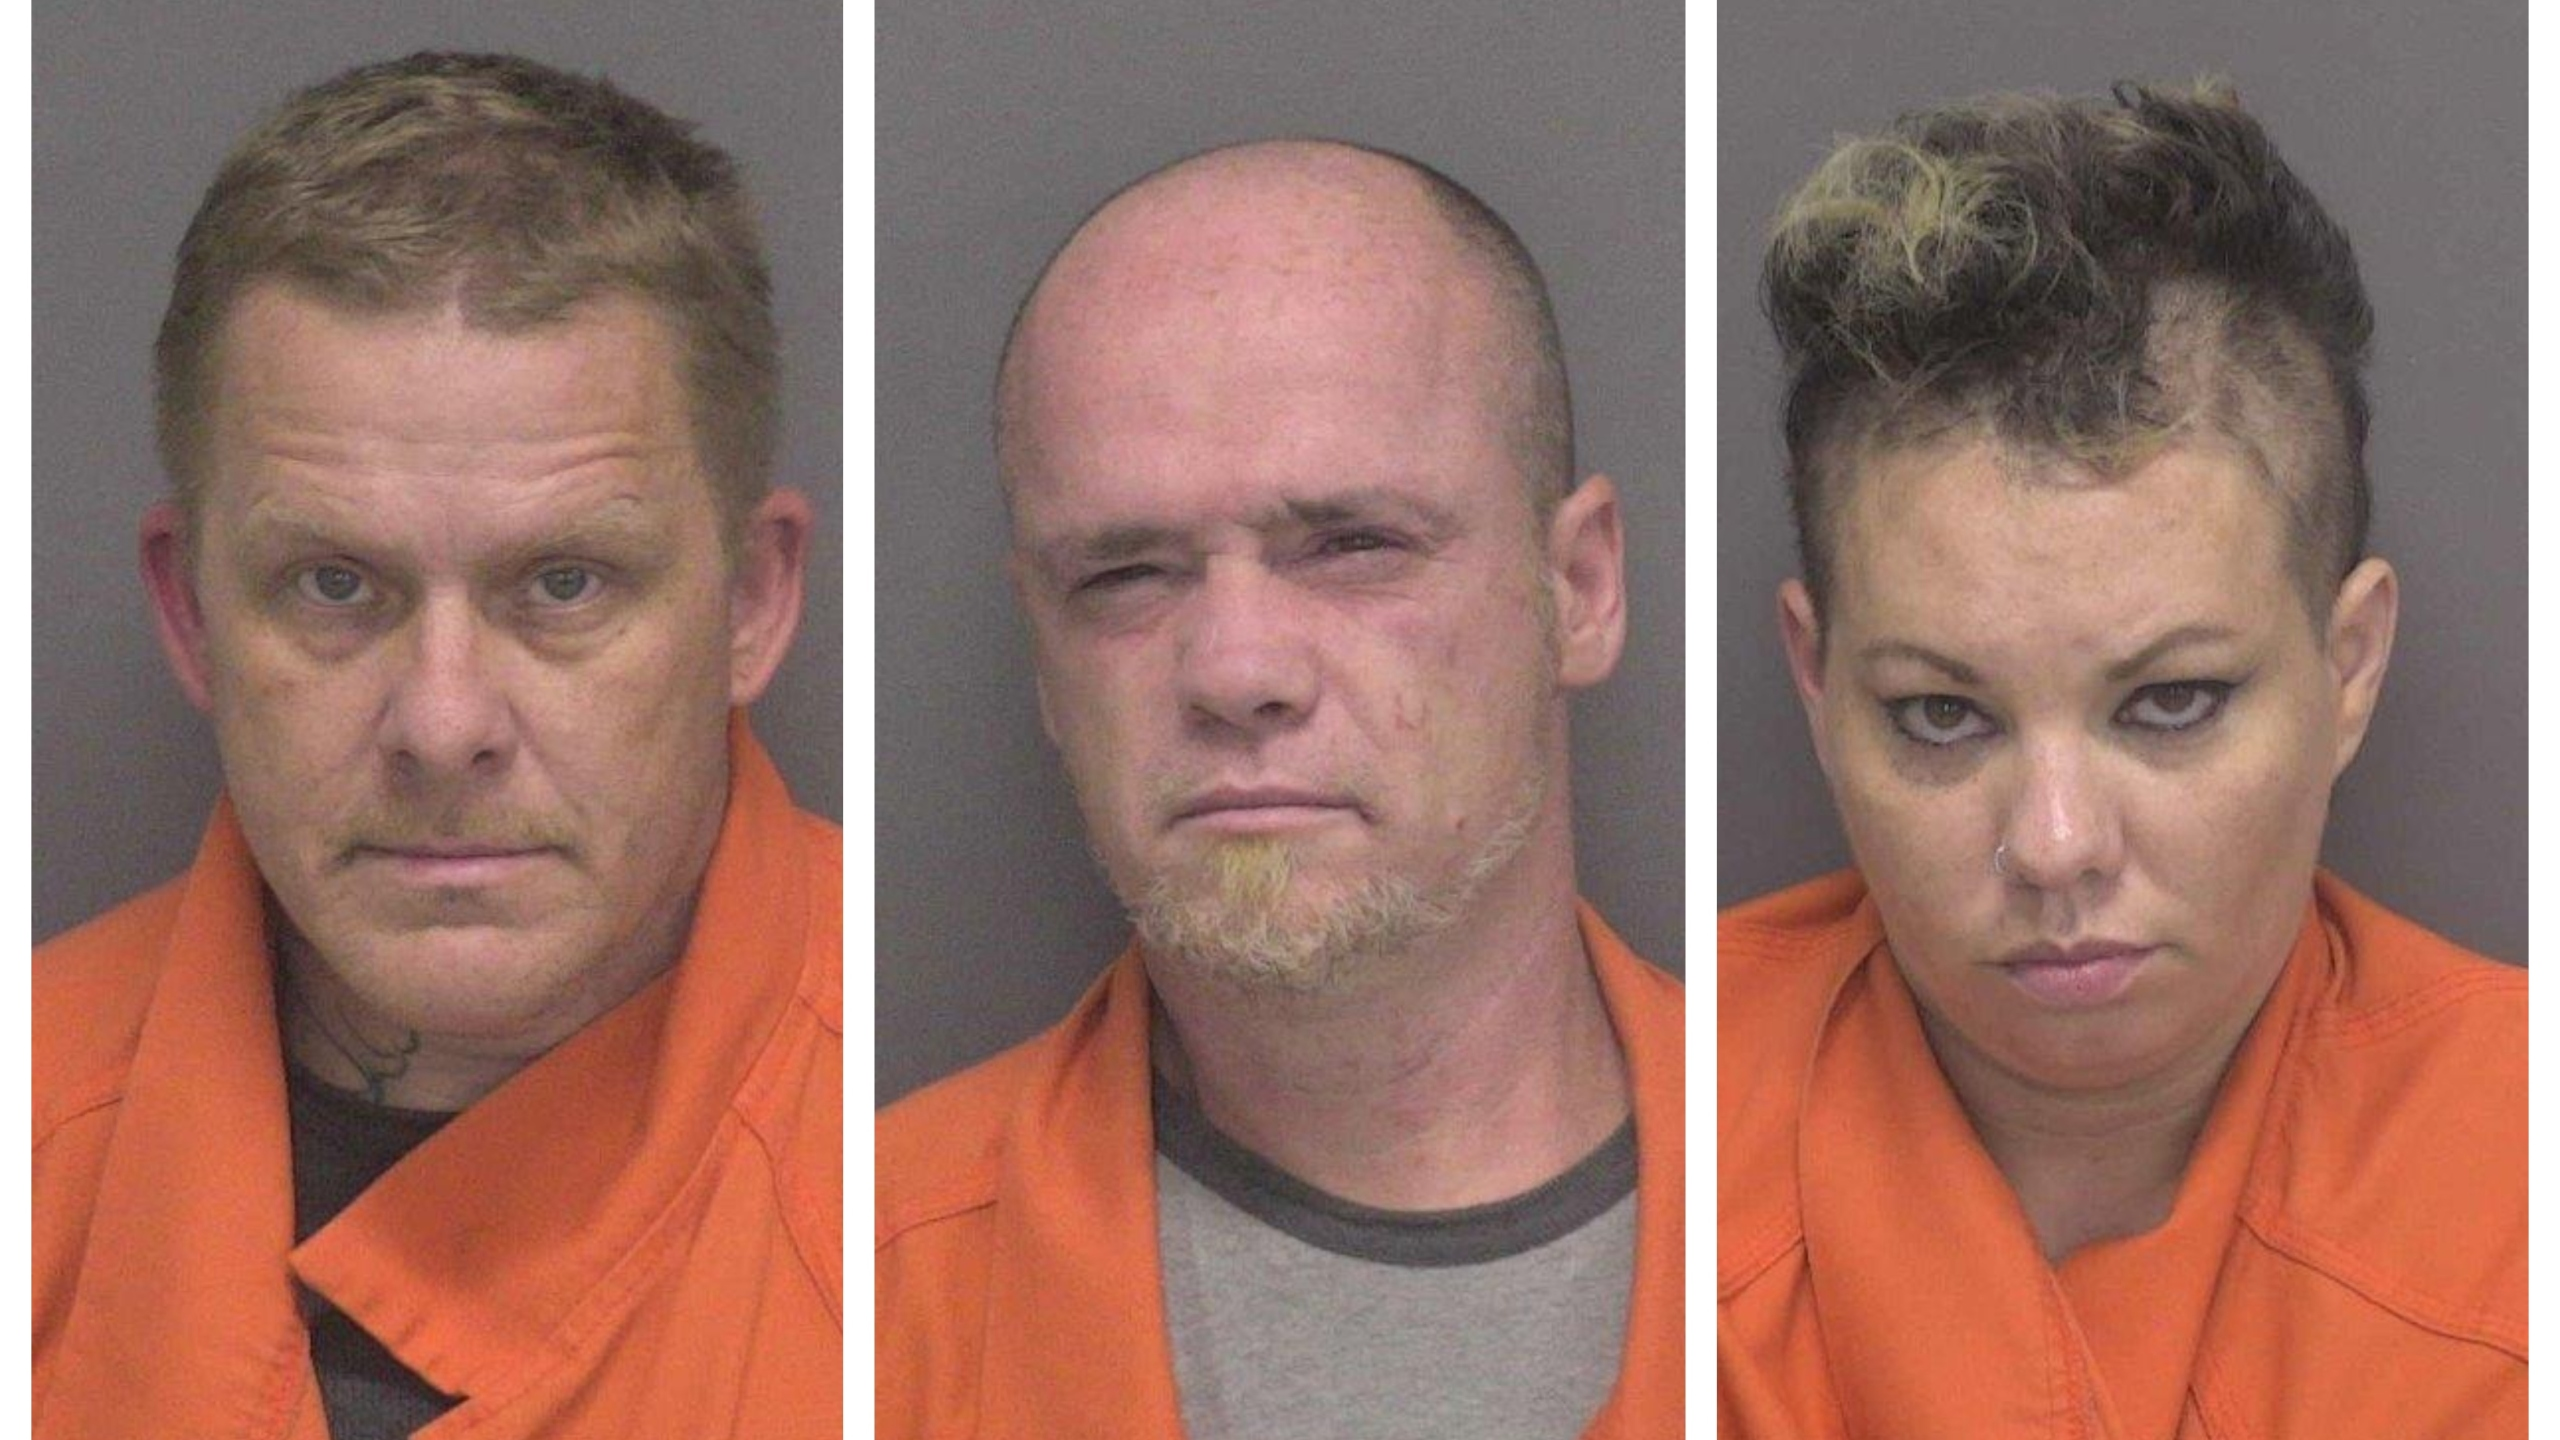 K9 traffic stop in Adams County ends with 3 arrests | WANE